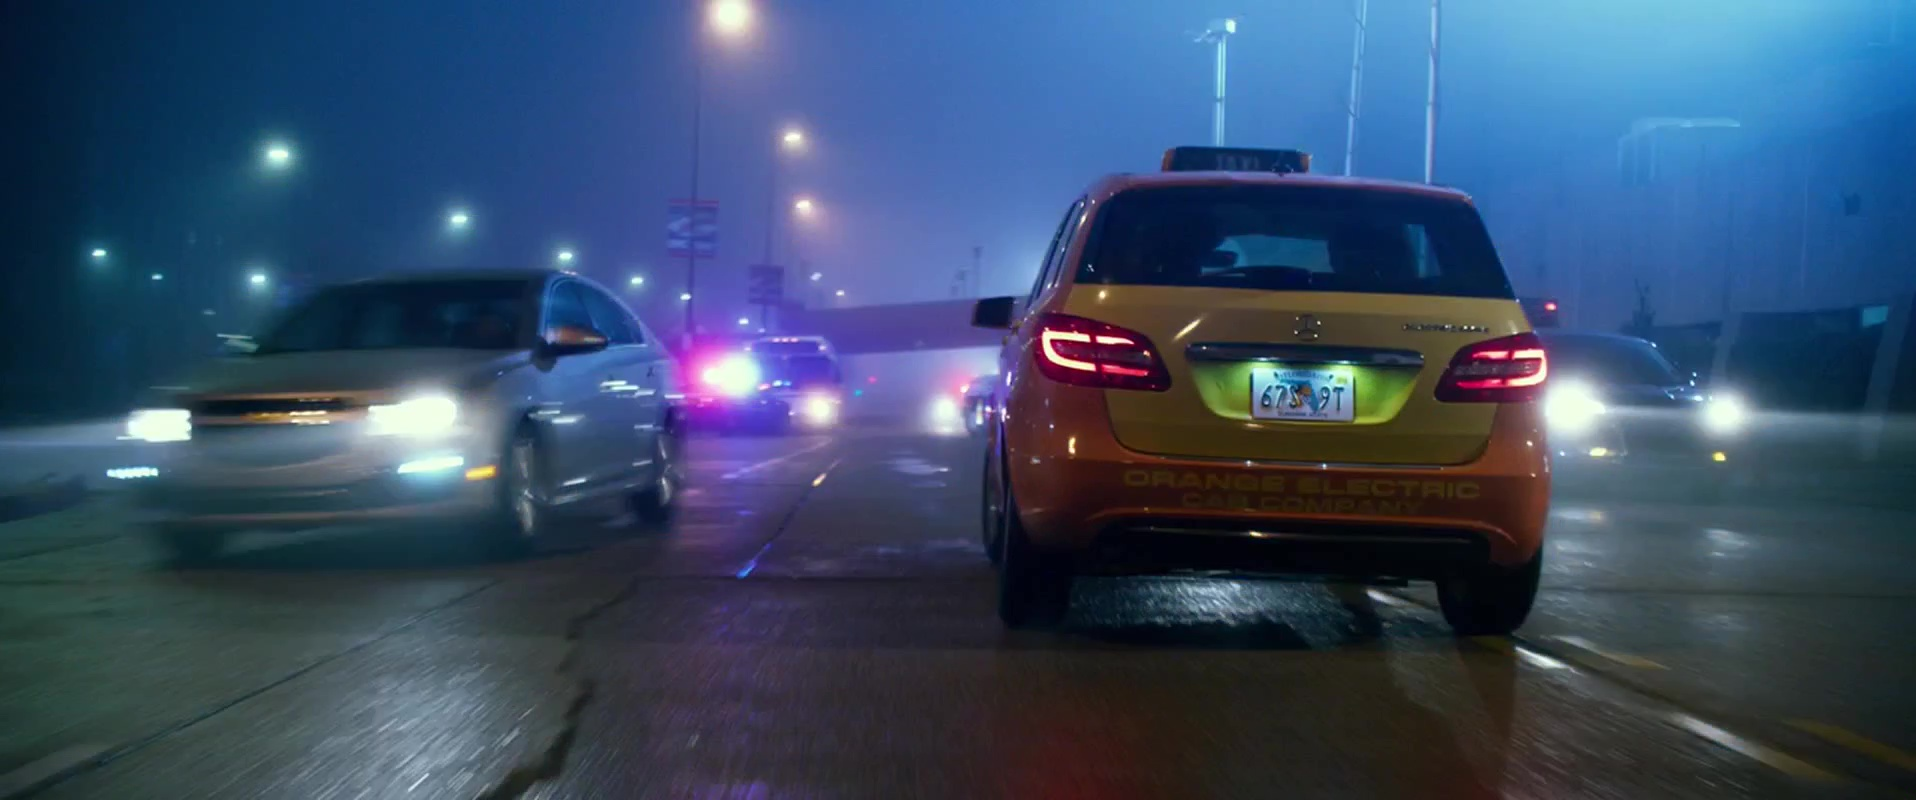 Mercedes benz b class w246 car in geostorm 2017 movie for Mercedes benz training and education